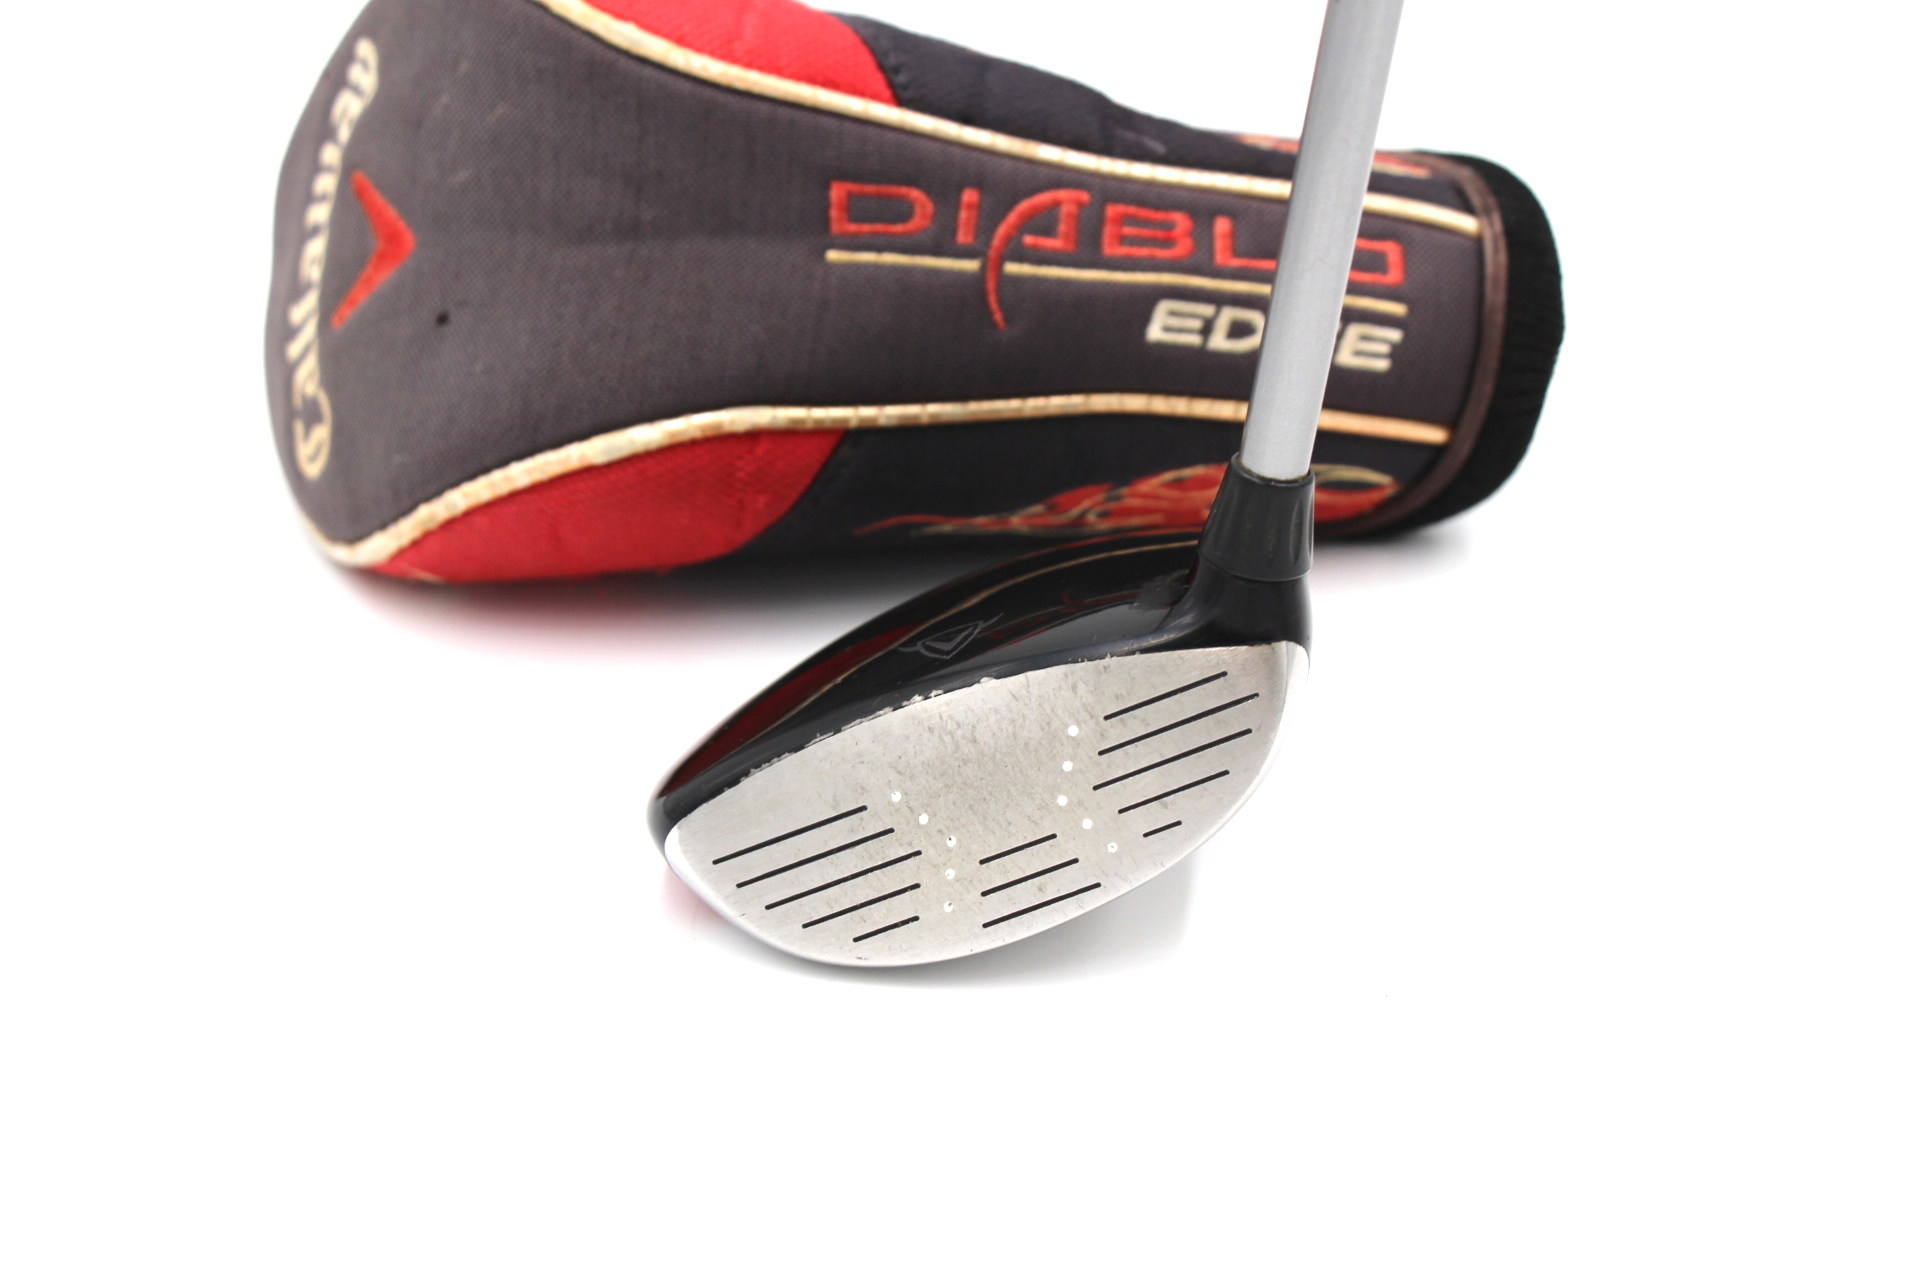 Callaway Diablo Edge Ladies 7-Wood Fairway